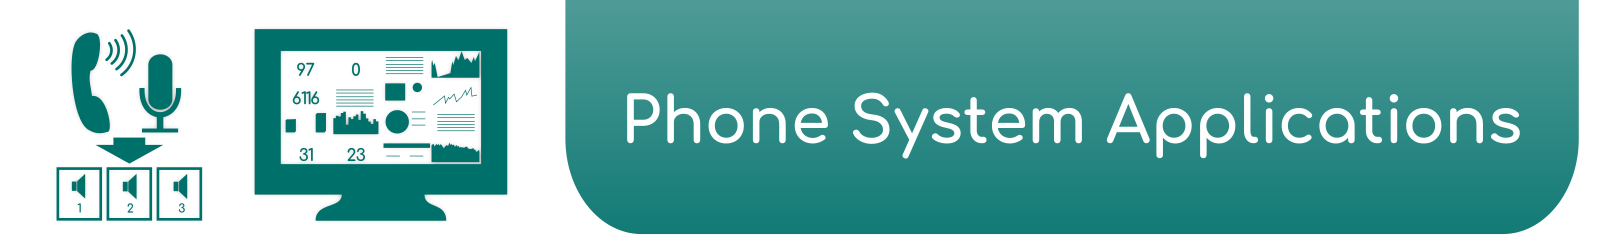 On-Premise Business Phone System Applications - Electronic Communication Services